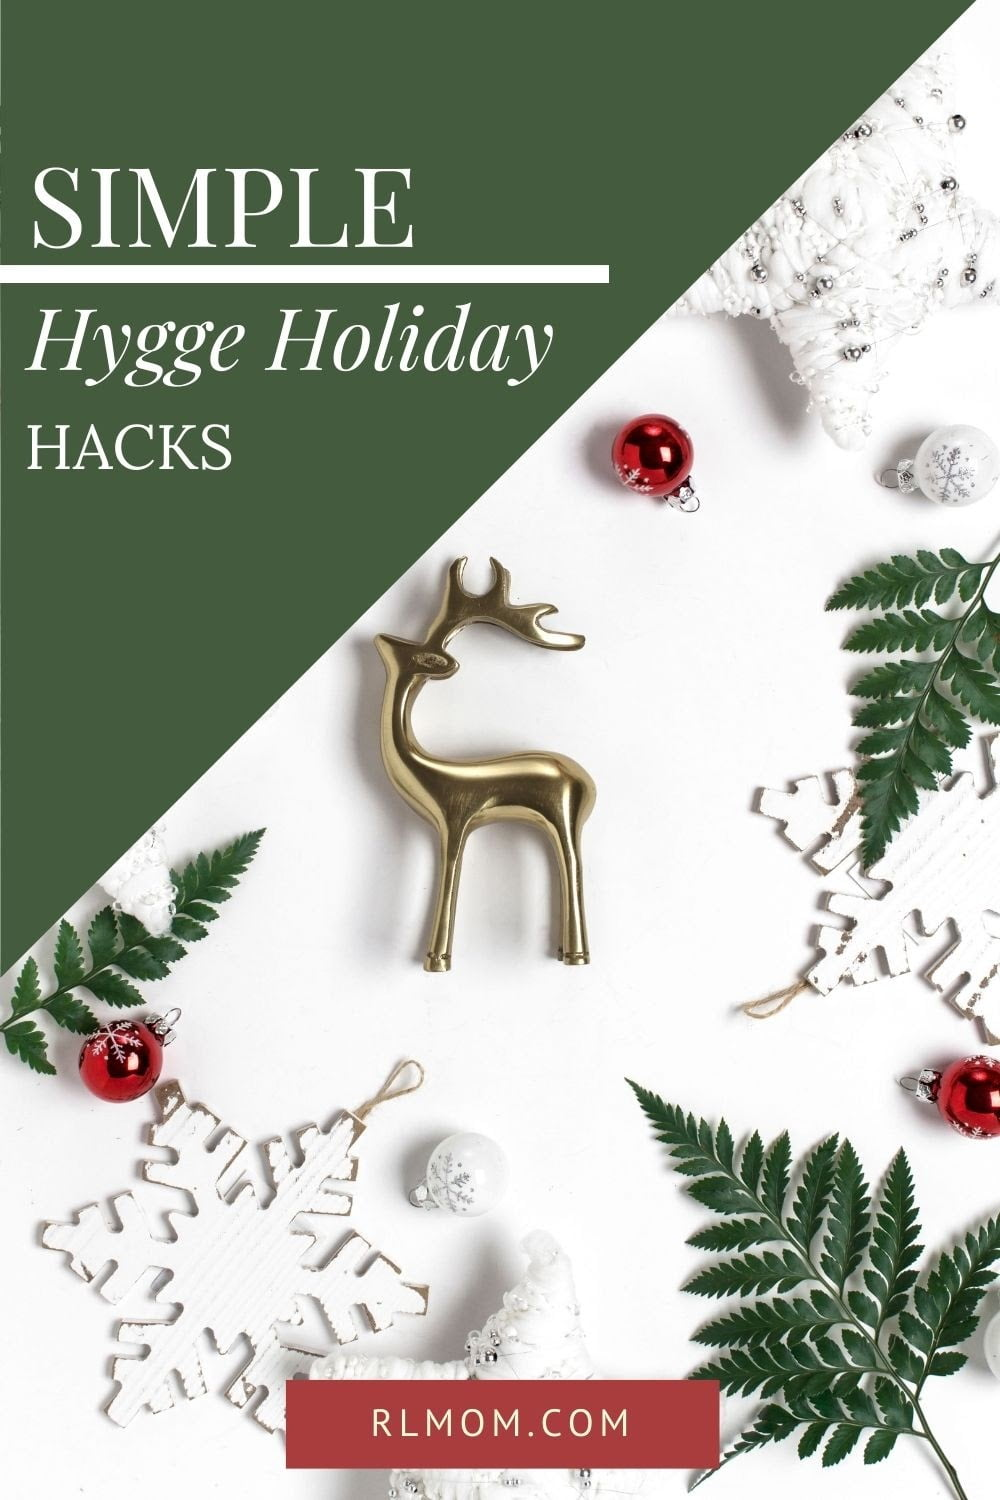 Simple Hygge Holiday Hacks